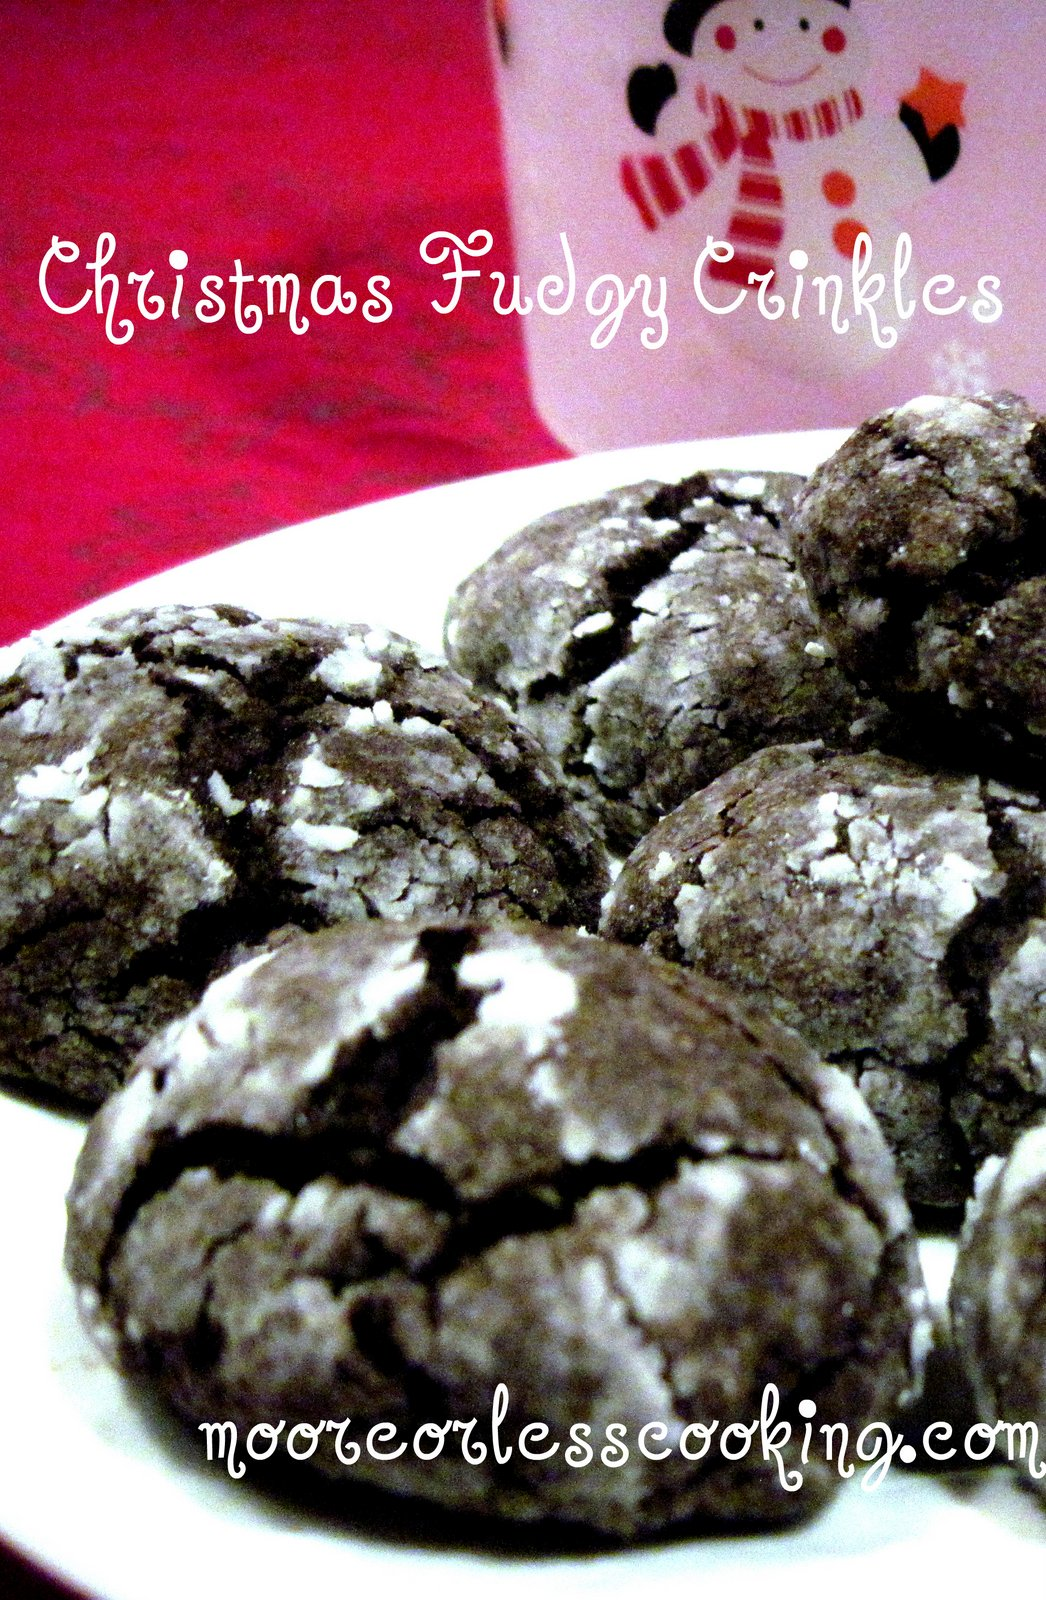 Christmas Fudgy Crinkles